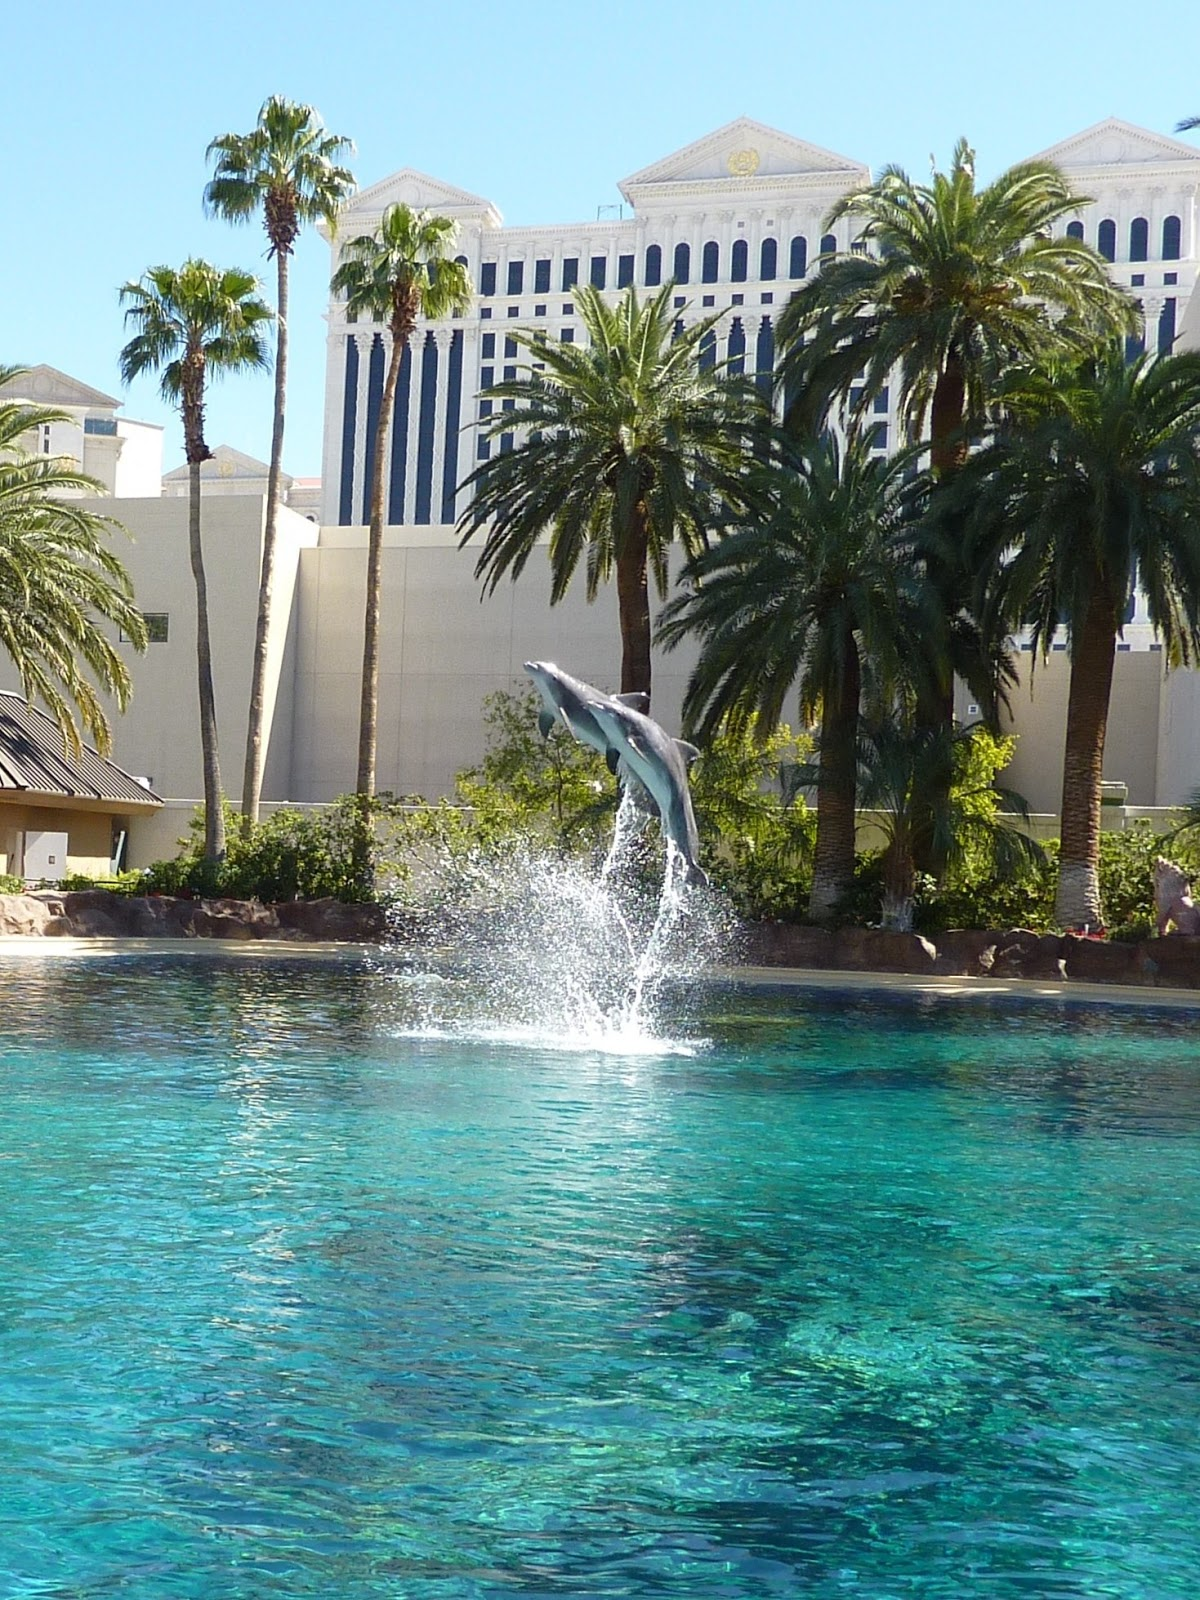 Outstanding Fun Days Las Vegas With Kids With Excellent It Was The Closest Ive Been To Dolphins And They Were Really Sweet To Watch  Then The Trainers Came And Did A Few Tricks With Them In The Secret Garden   With Appealing Rattan Garden Furniture Sofa Also Garden Wall Features In Addition Sell Gold Hatton Garden And Garden Trading Voucher As Well As Gardens Additionally Natwest Covent Garden From Utahfundaysblogspotcom With   Excellent Fun Days Las Vegas With Kids With Appealing It Was The Closest Ive Been To Dolphins And They Were Really Sweet To Watch  Then The Trainers Came And Did A Few Tricks With Them In The Secret Garden   And Outstanding Rattan Garden Furniture Sofa Also Garden Wall Features In Addition Sell Gold Hatton Garden From Utahfundaysblogspotcom